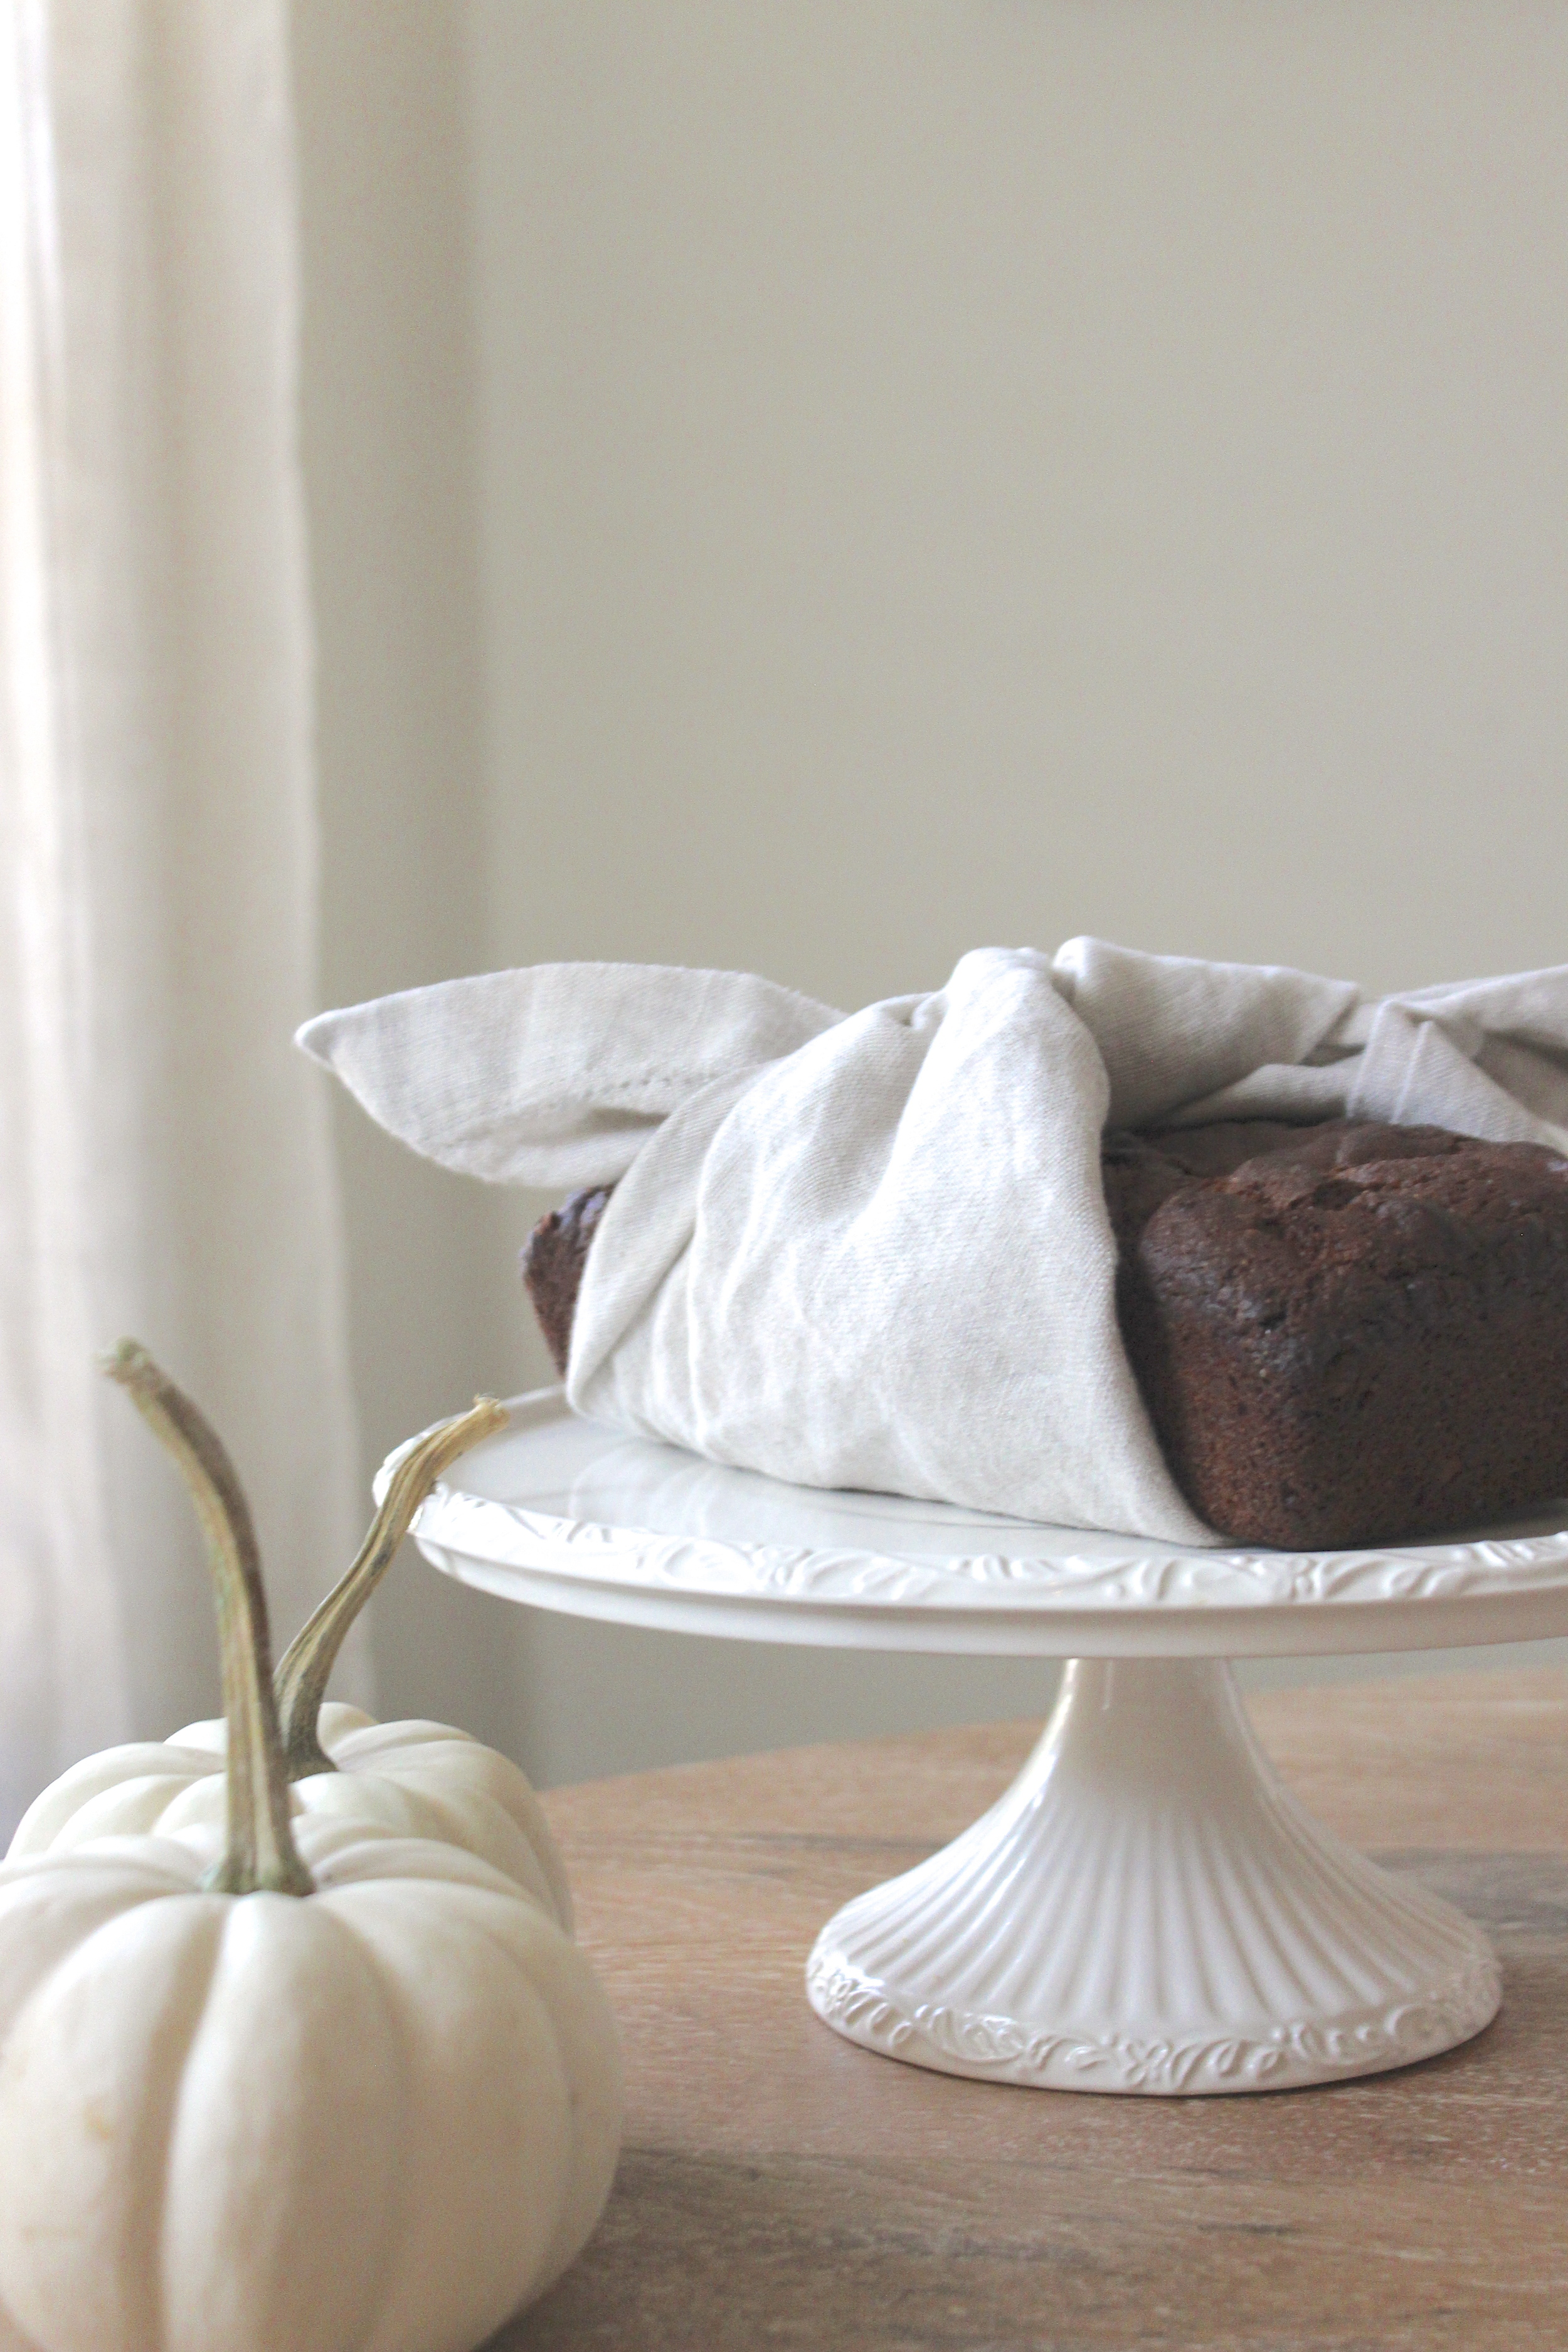 Victoria Austin Designs | Food Styling | Chocolate and Pecan Spiced Pumpkin Bread